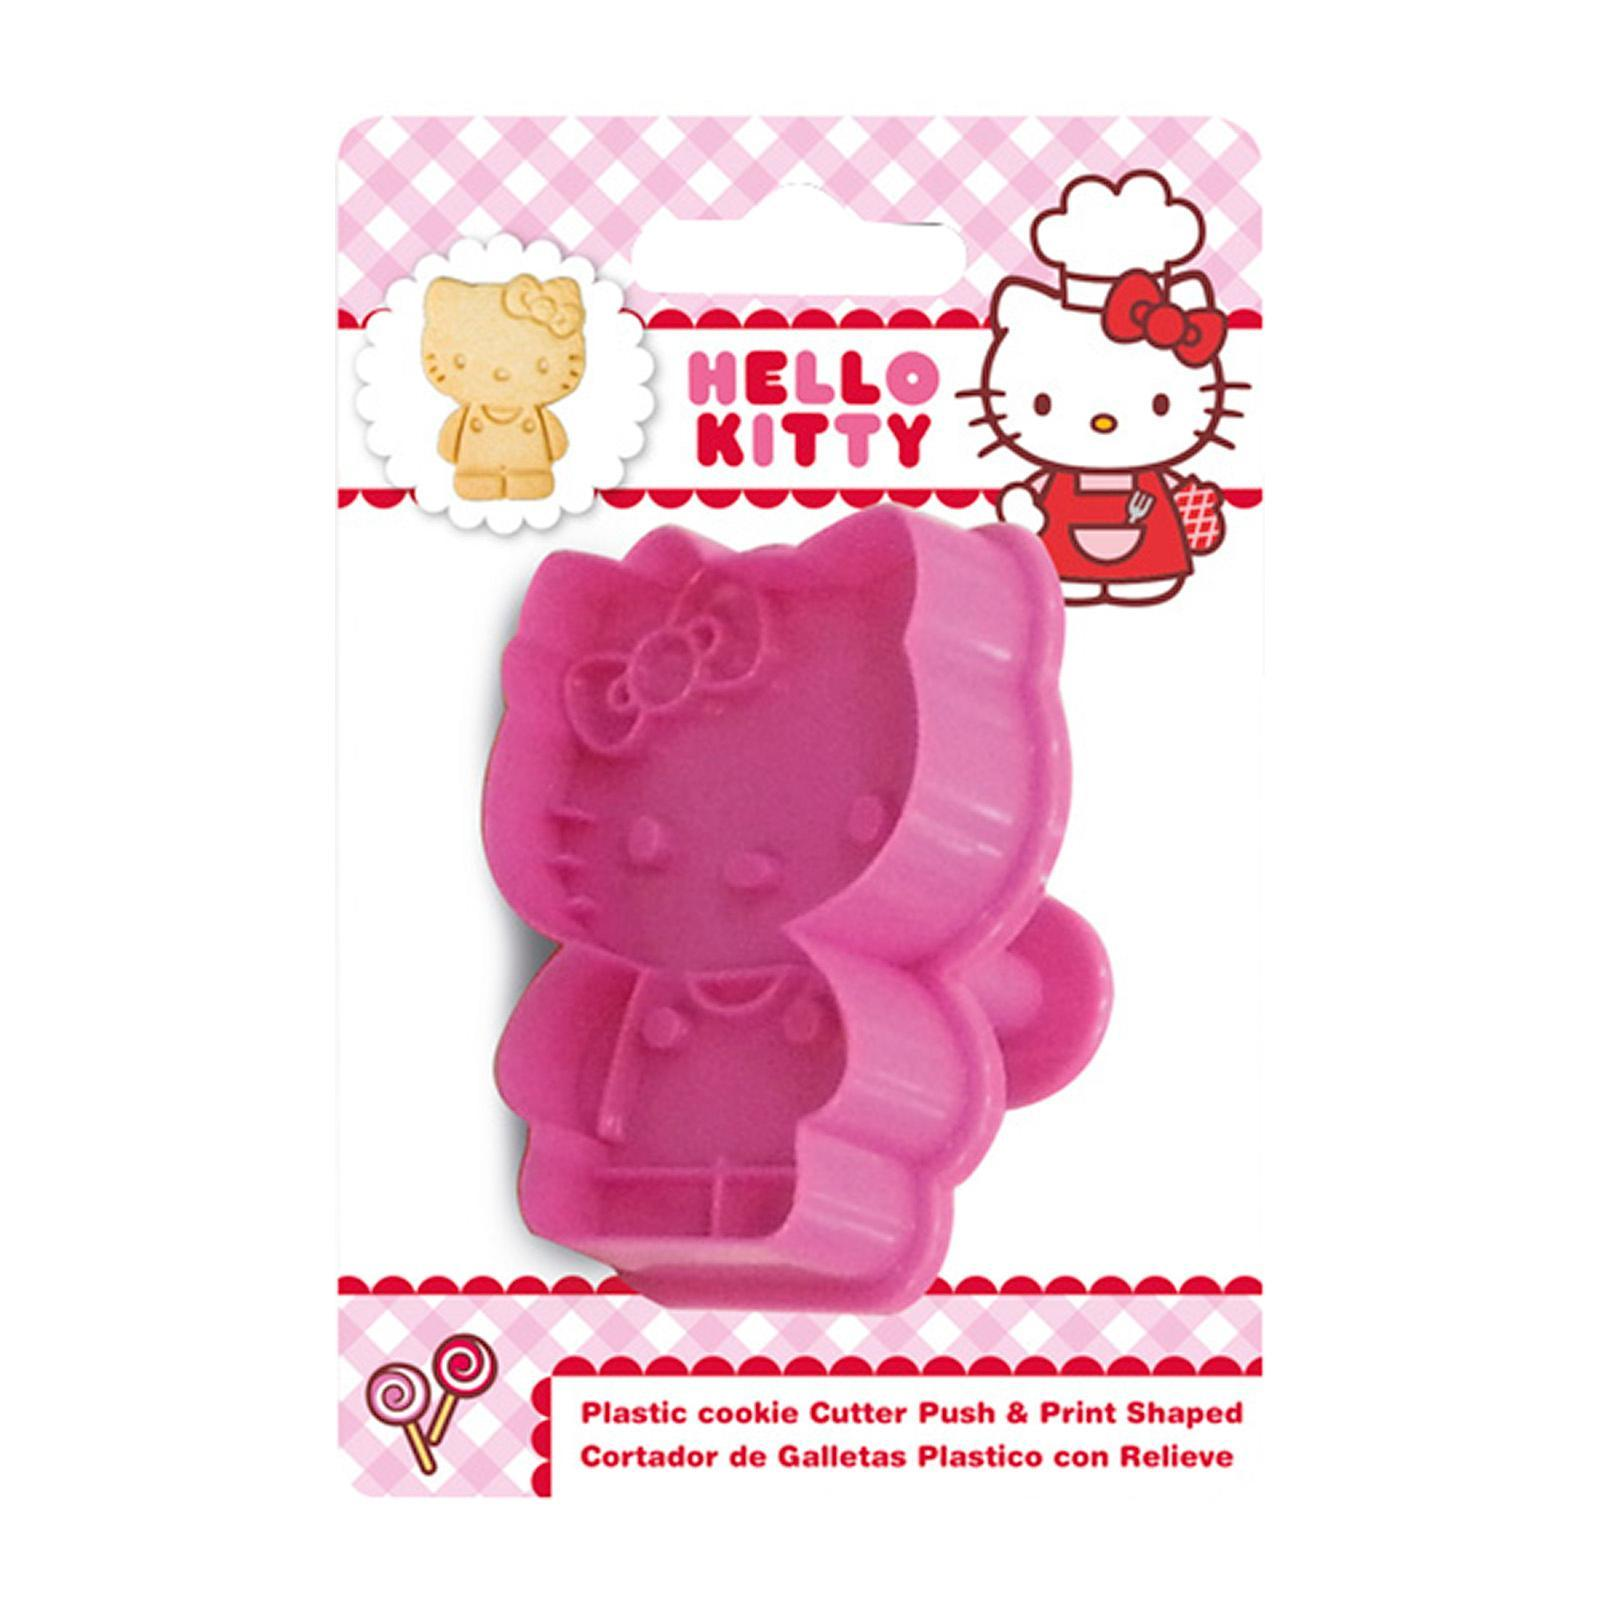 Sanrio Genuine Hello Kitty Body Shaped Baking-Plastic Cutter